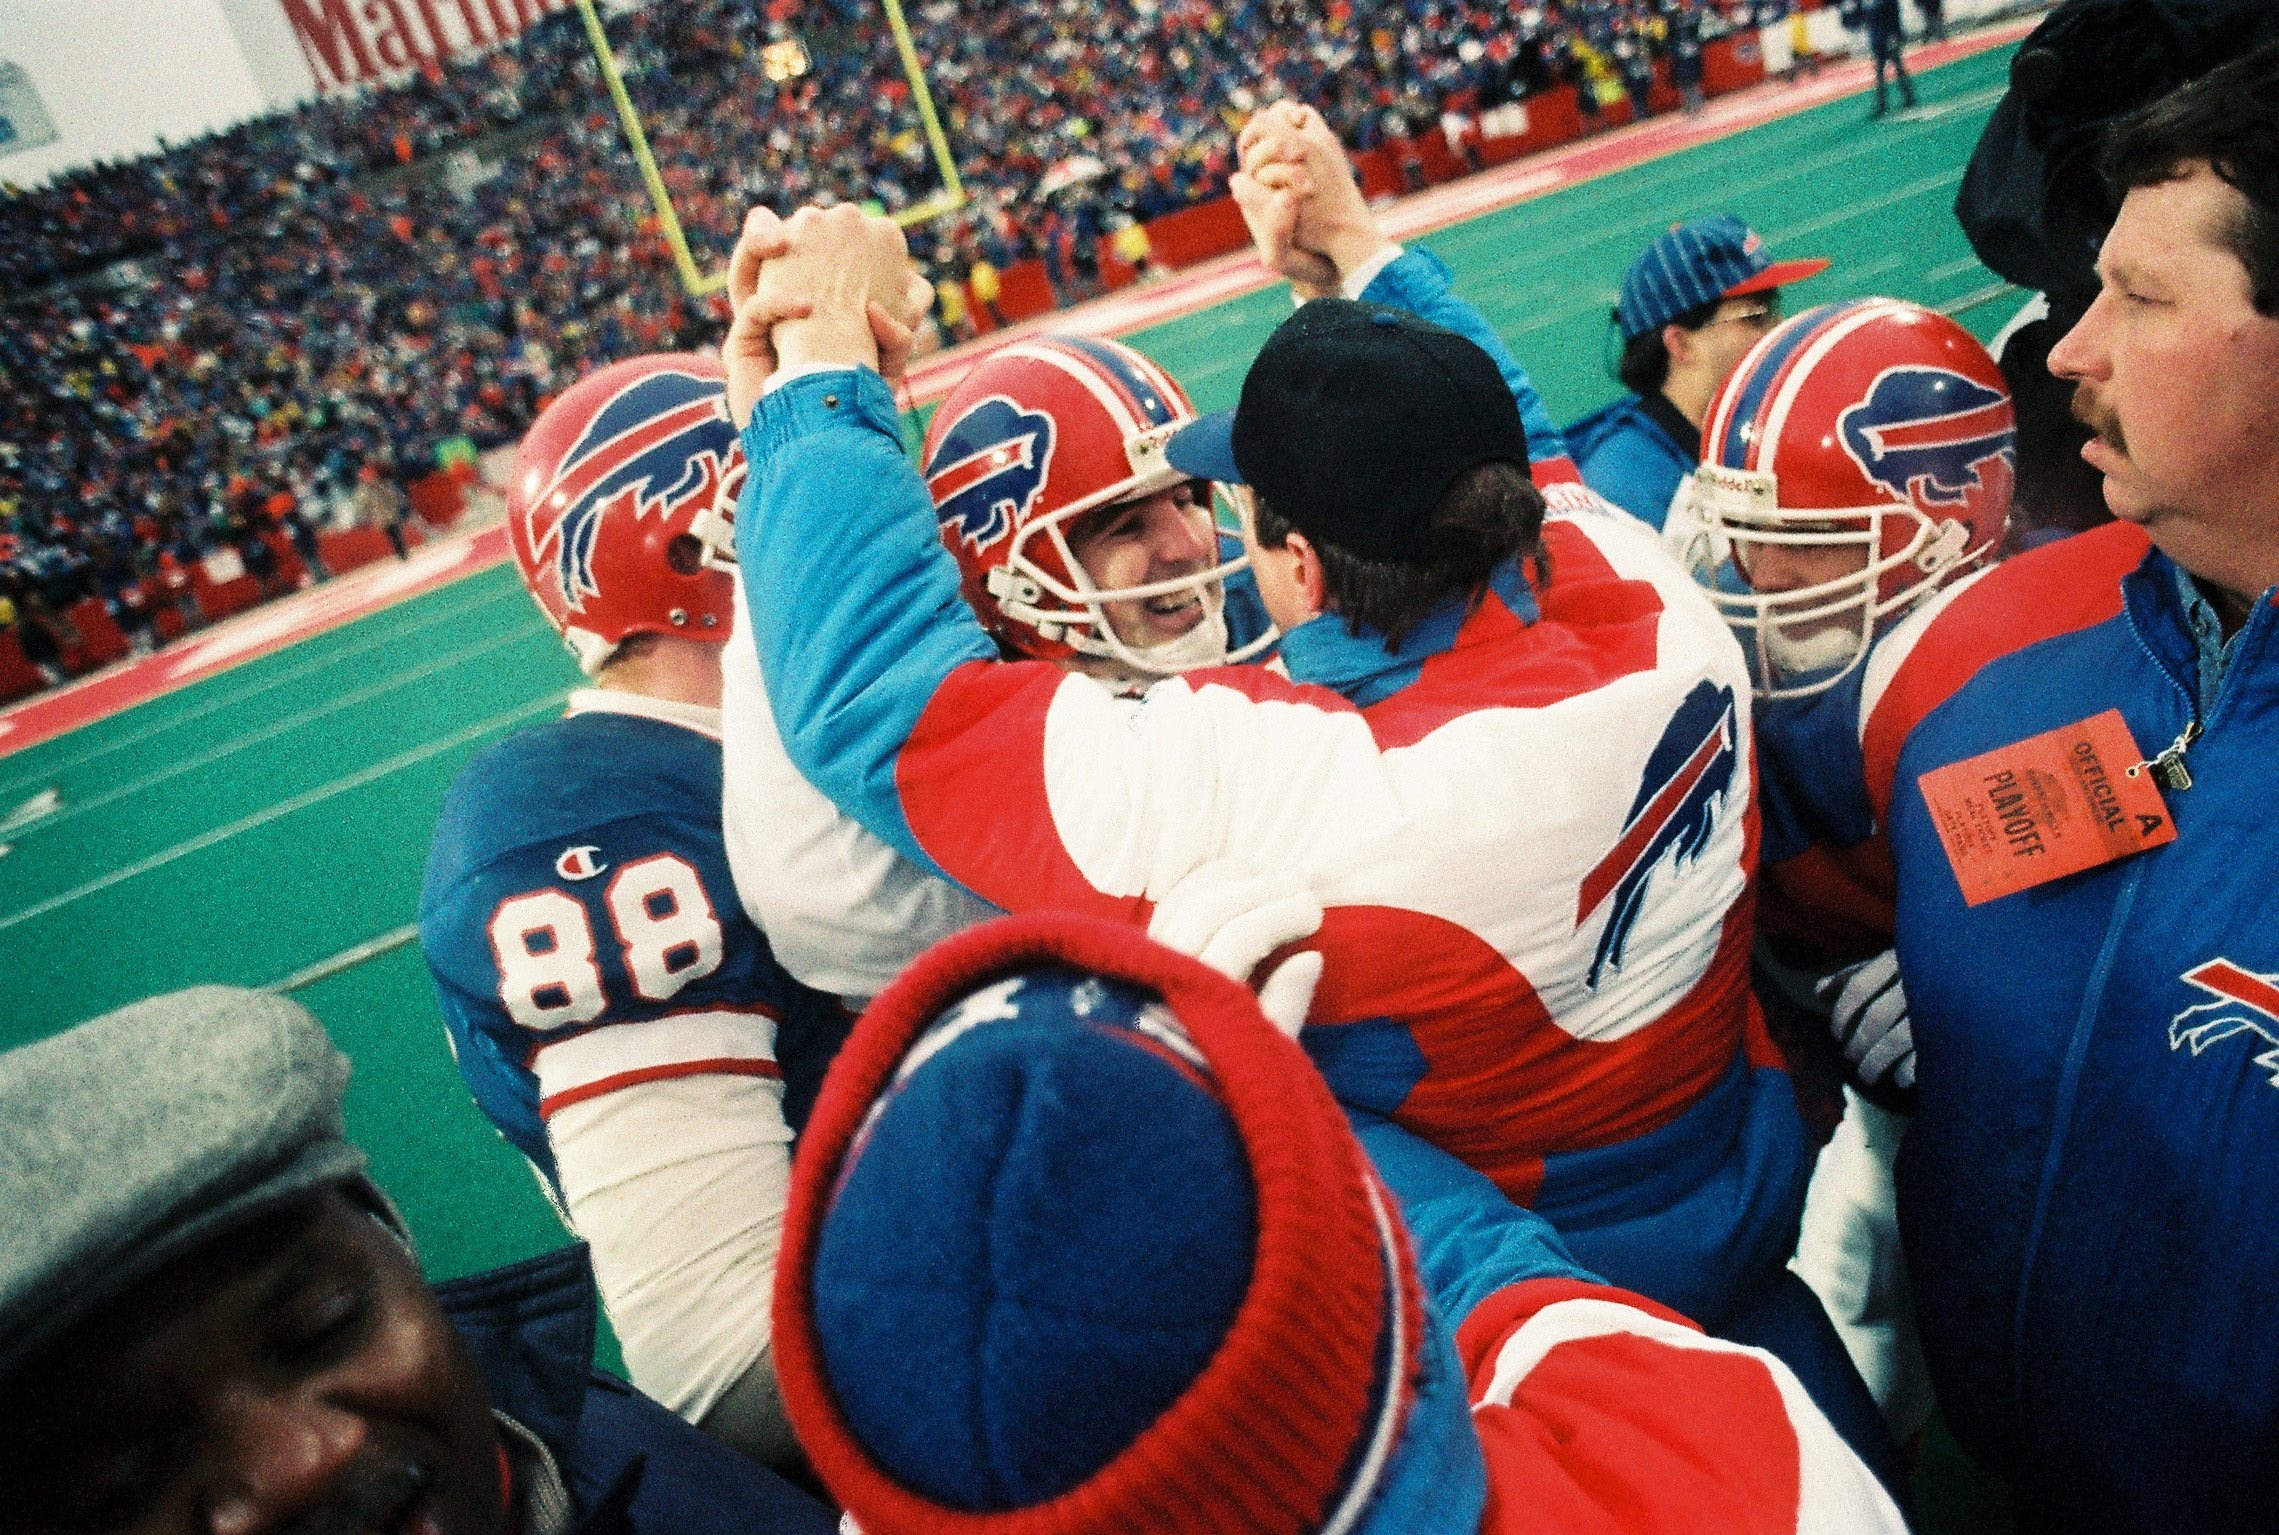 Jim Kelly, who was out with an injury that day, high fives Frank Reich after the comeback win over Houston.